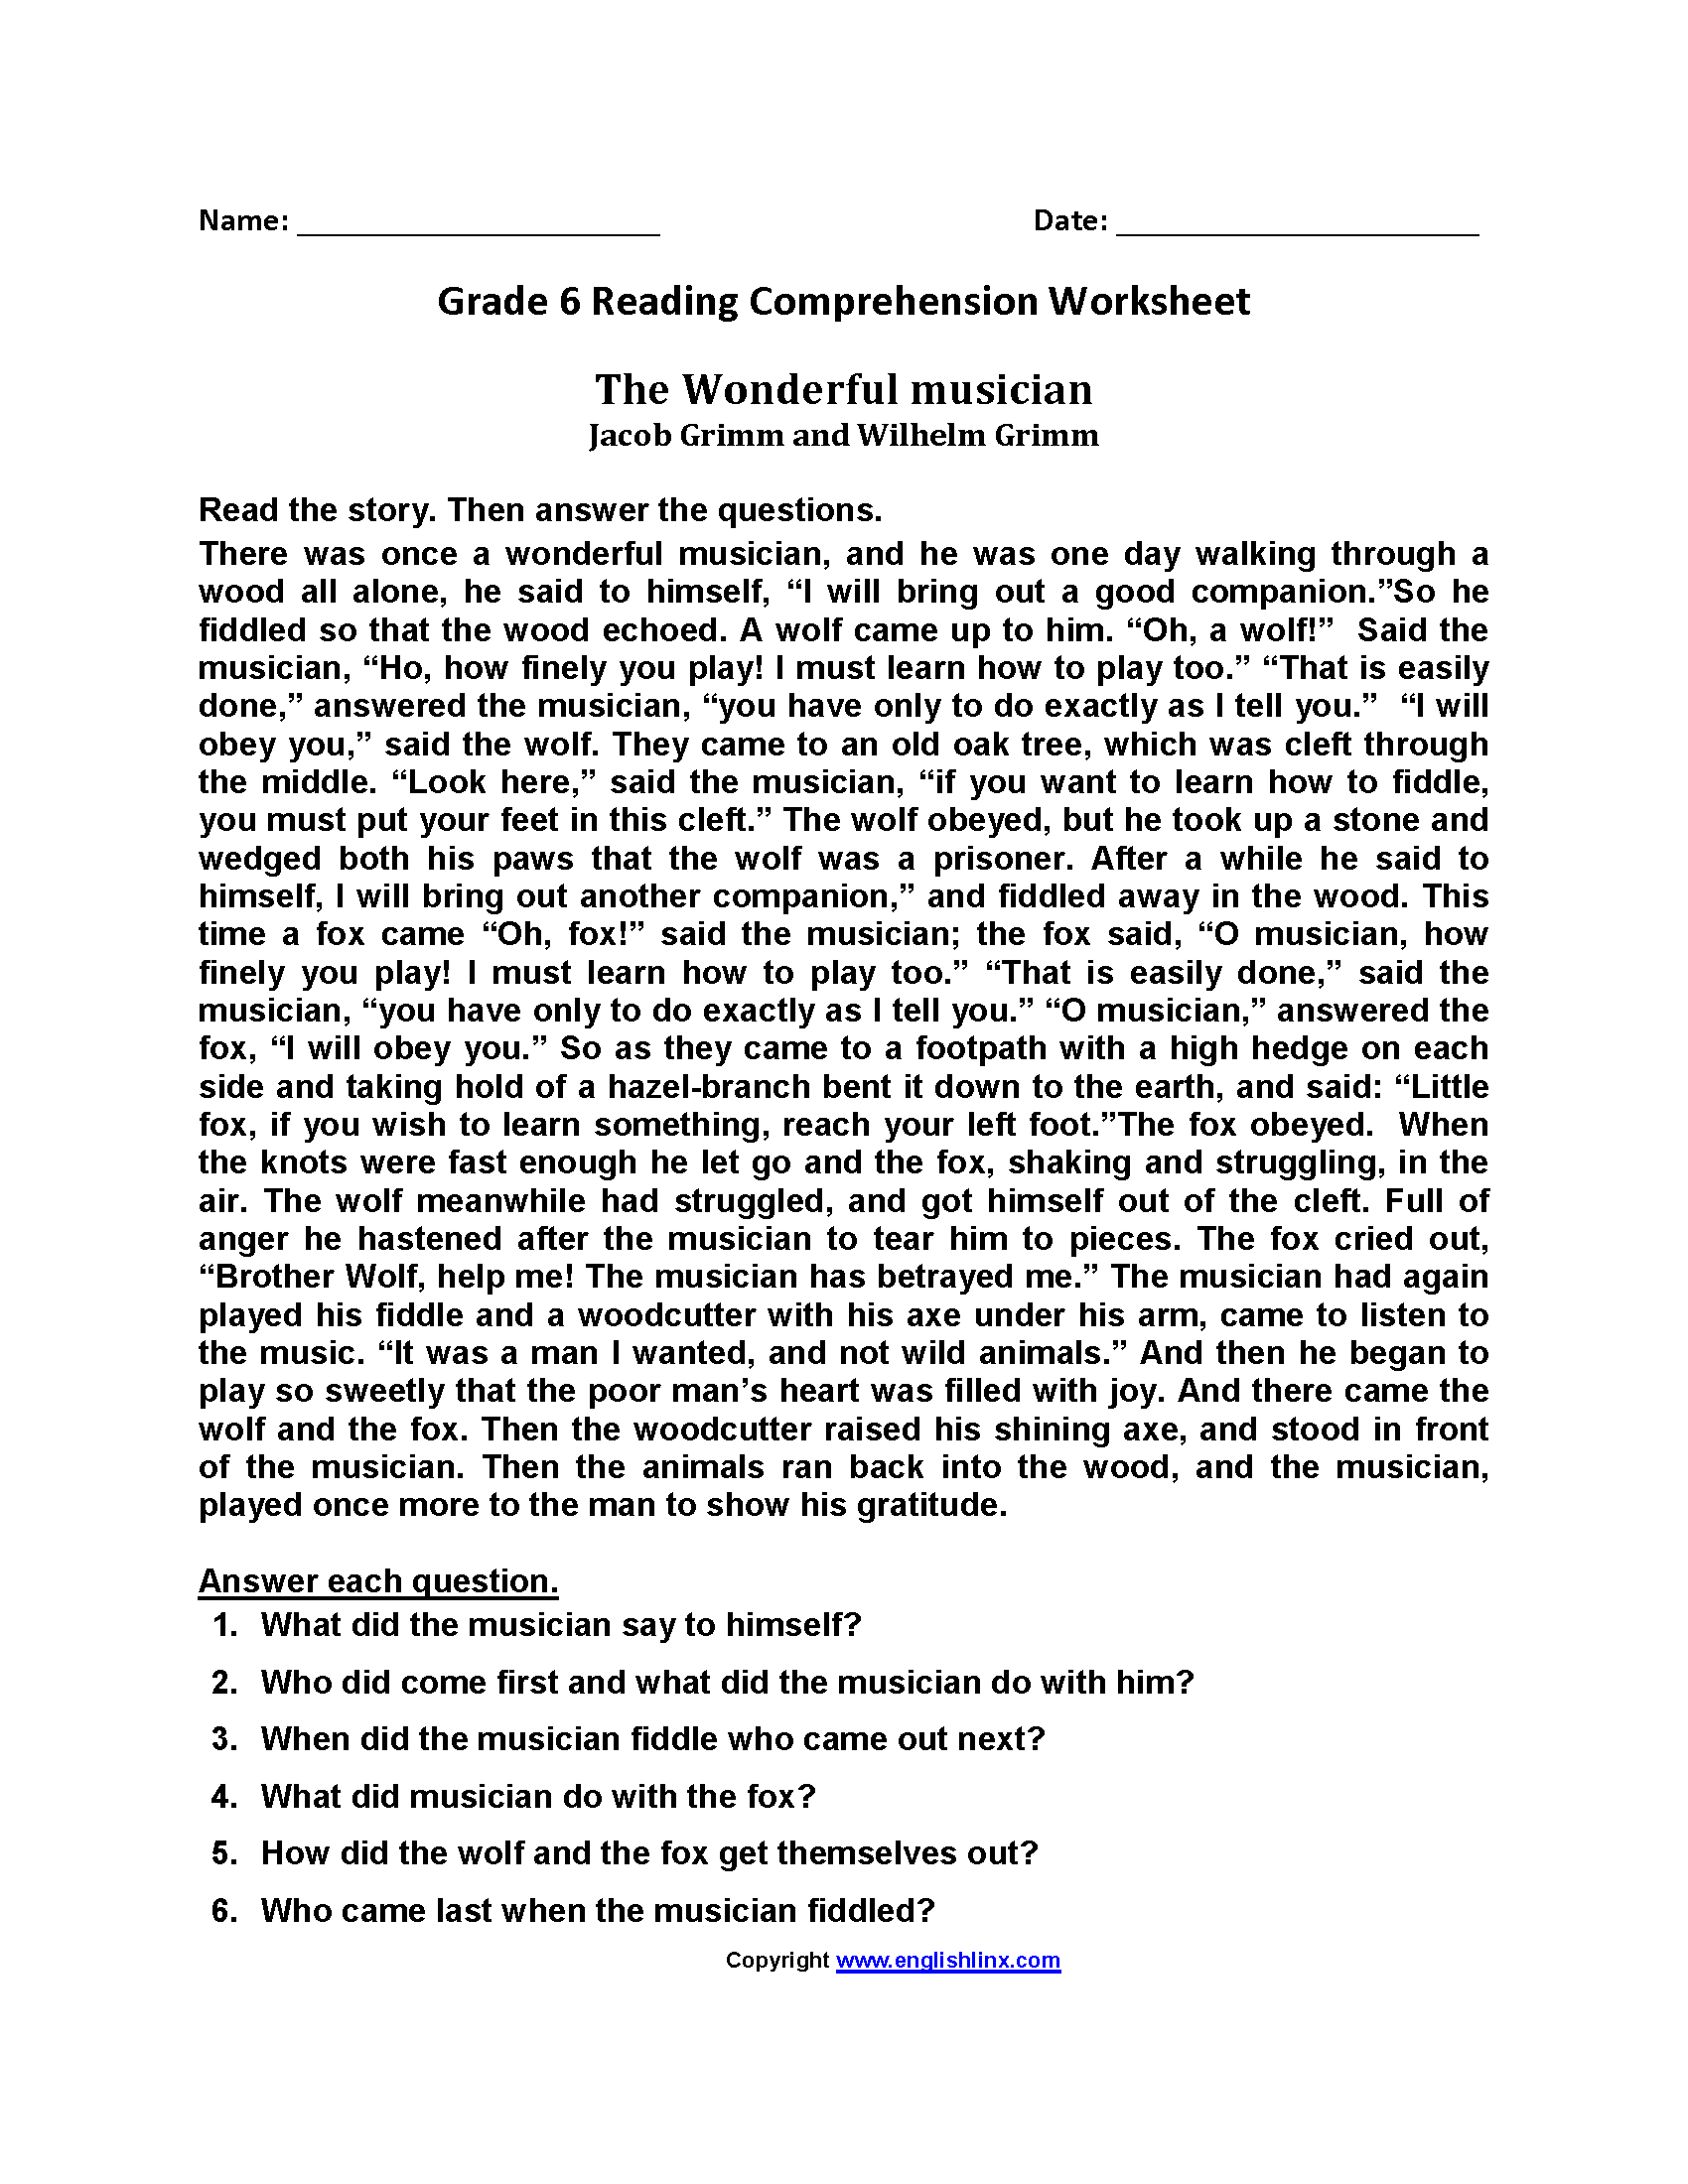 - The Wonderful MusicianSixth Grade Reading Worksheets (With